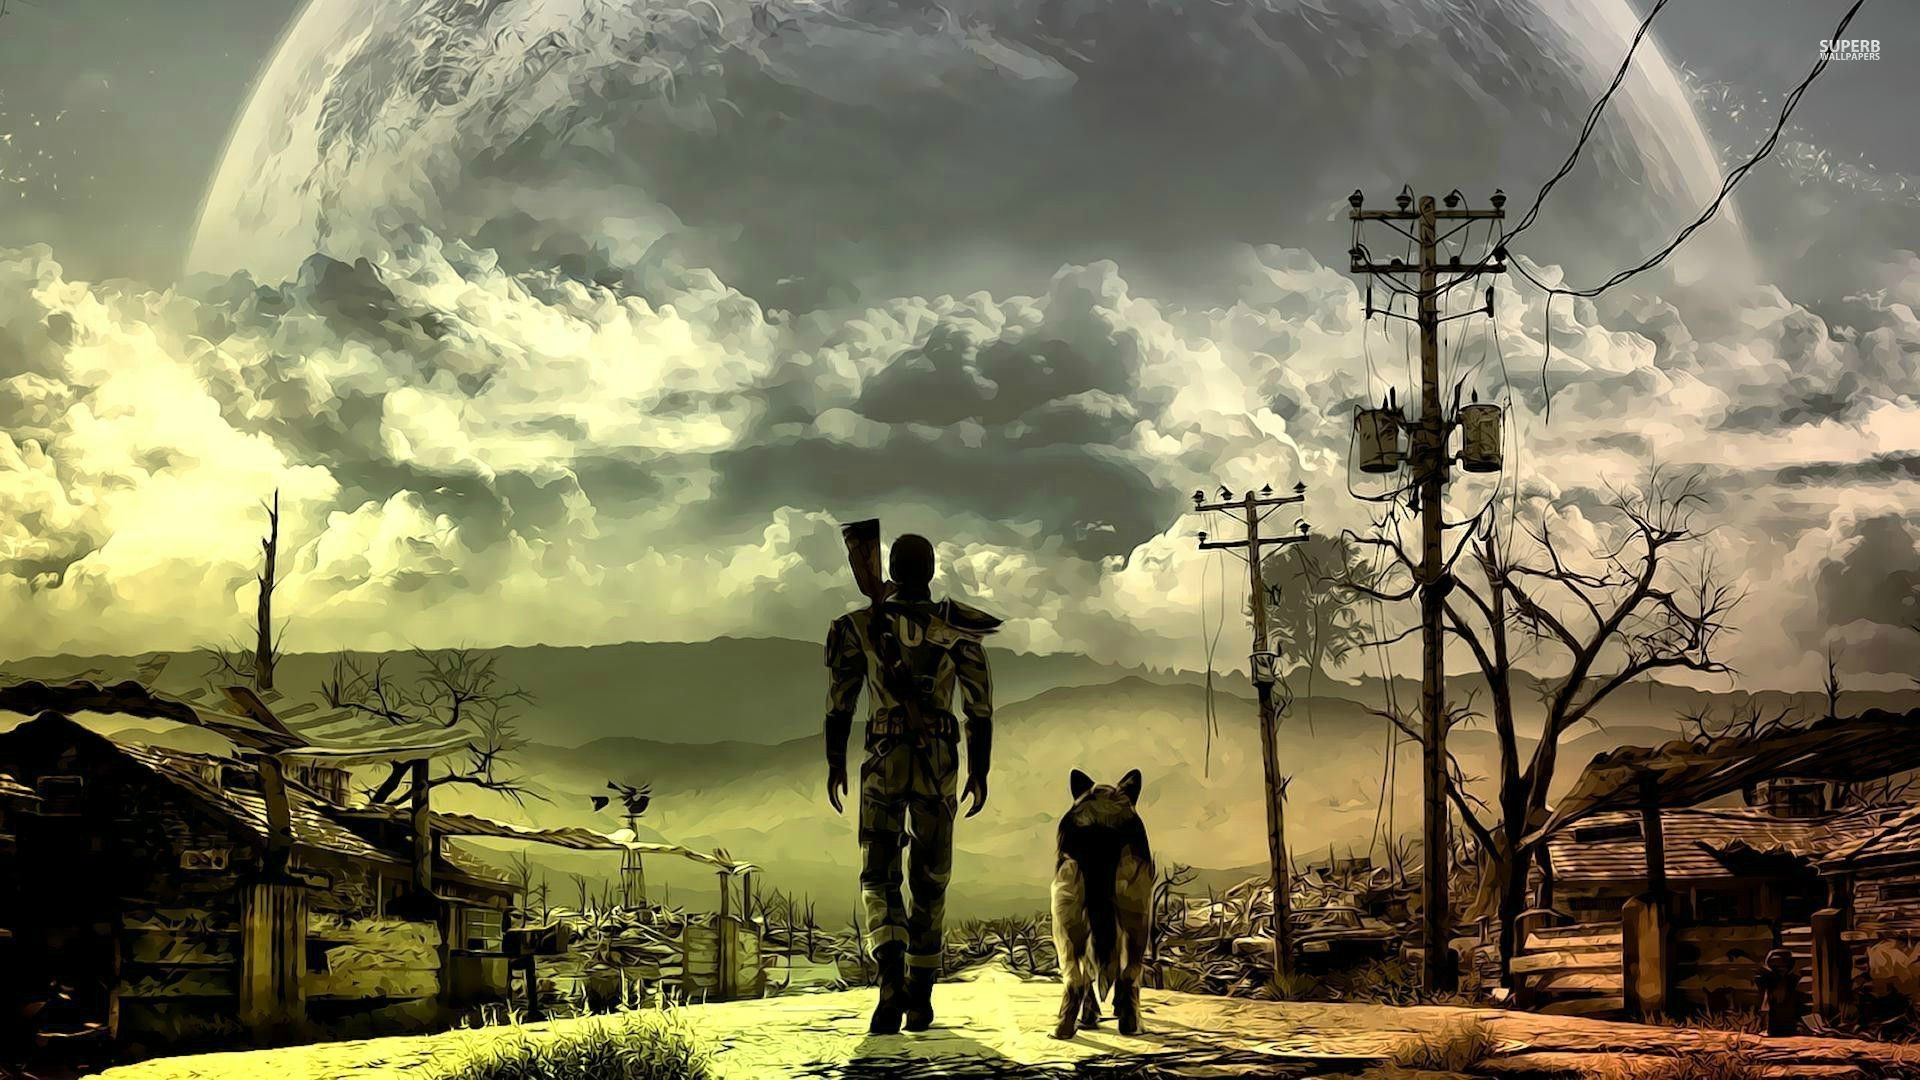 Fallout HD Wallpapers Backgrounds Wallpaper   HD Wallpapers   Pinterest    Hd wallpaper, Wallpaper backgrounds and Wallpaper